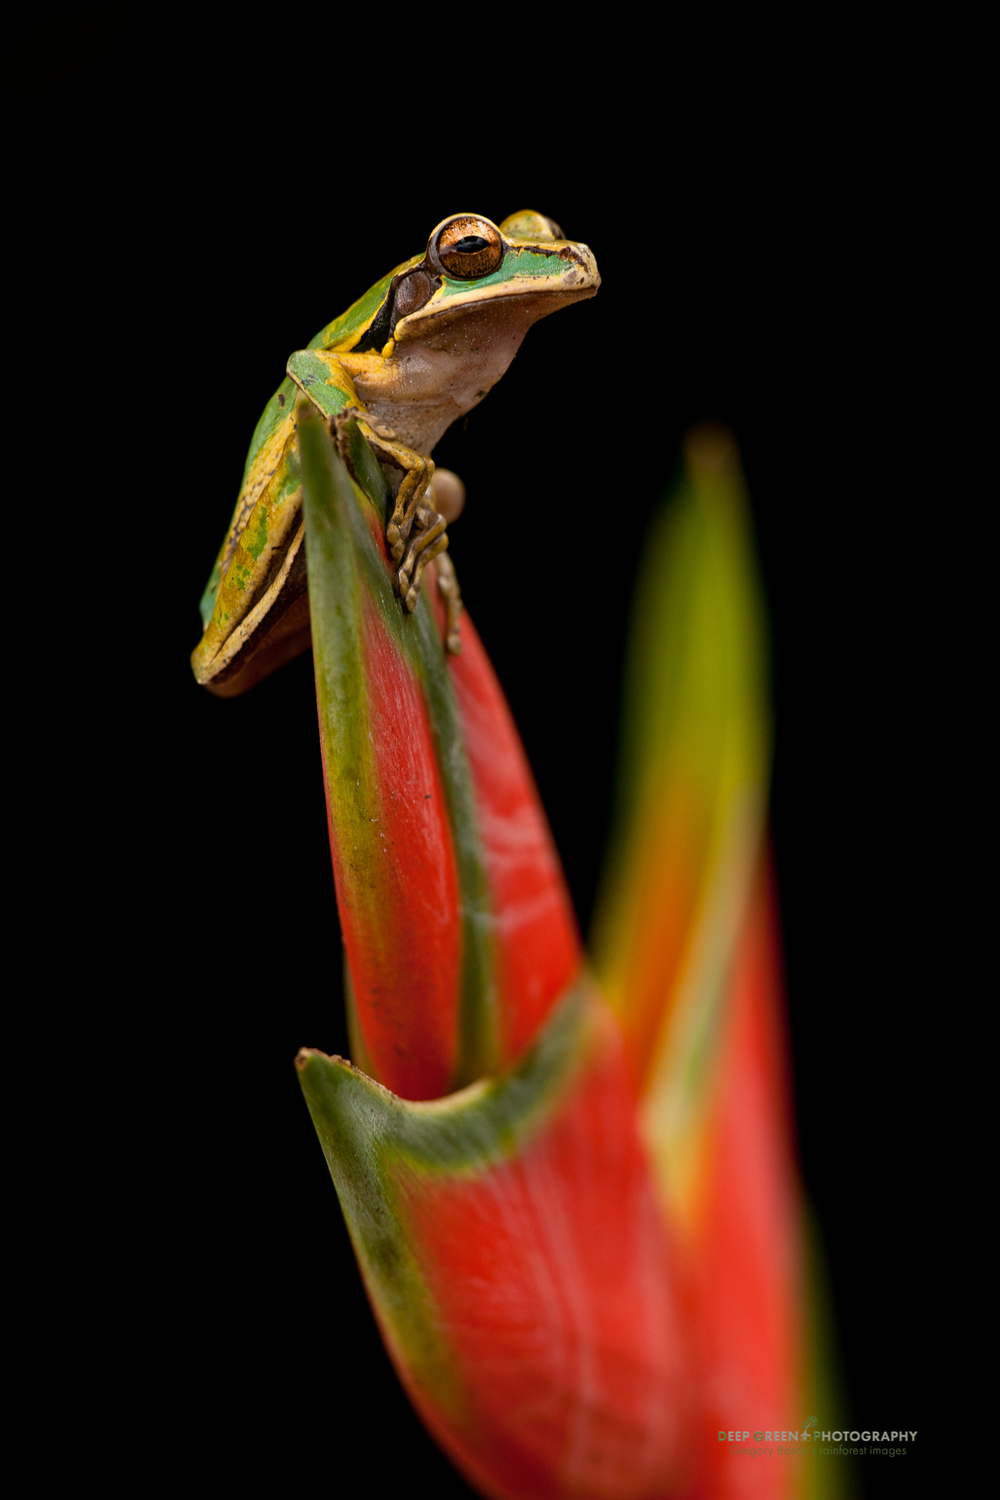 Masked tree frog (Smilisca phaeota) on a Heliconia